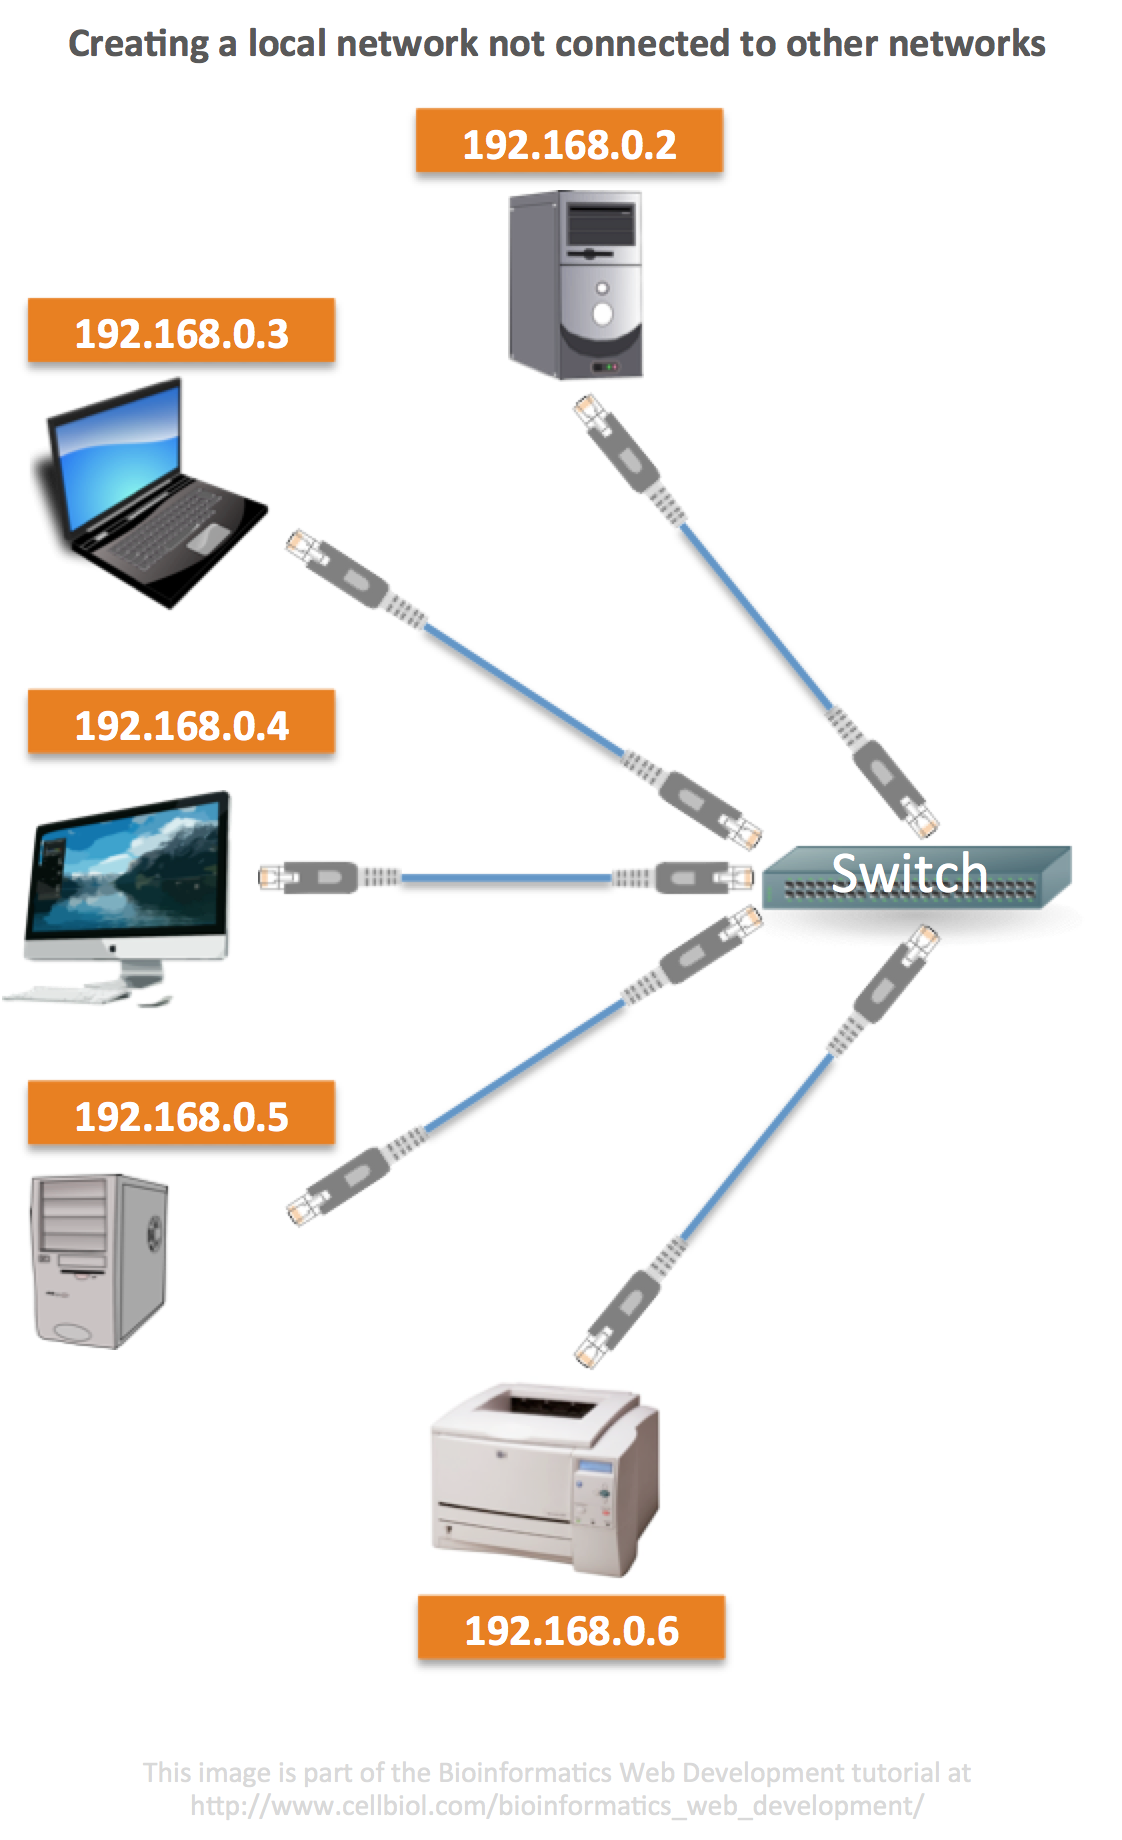 A local area network not connected to other networks created through a switch and some ethernet cables. One of the PCs on the network could host a DHCP server, but this is optional as we could configure the network settings for each individual device manually